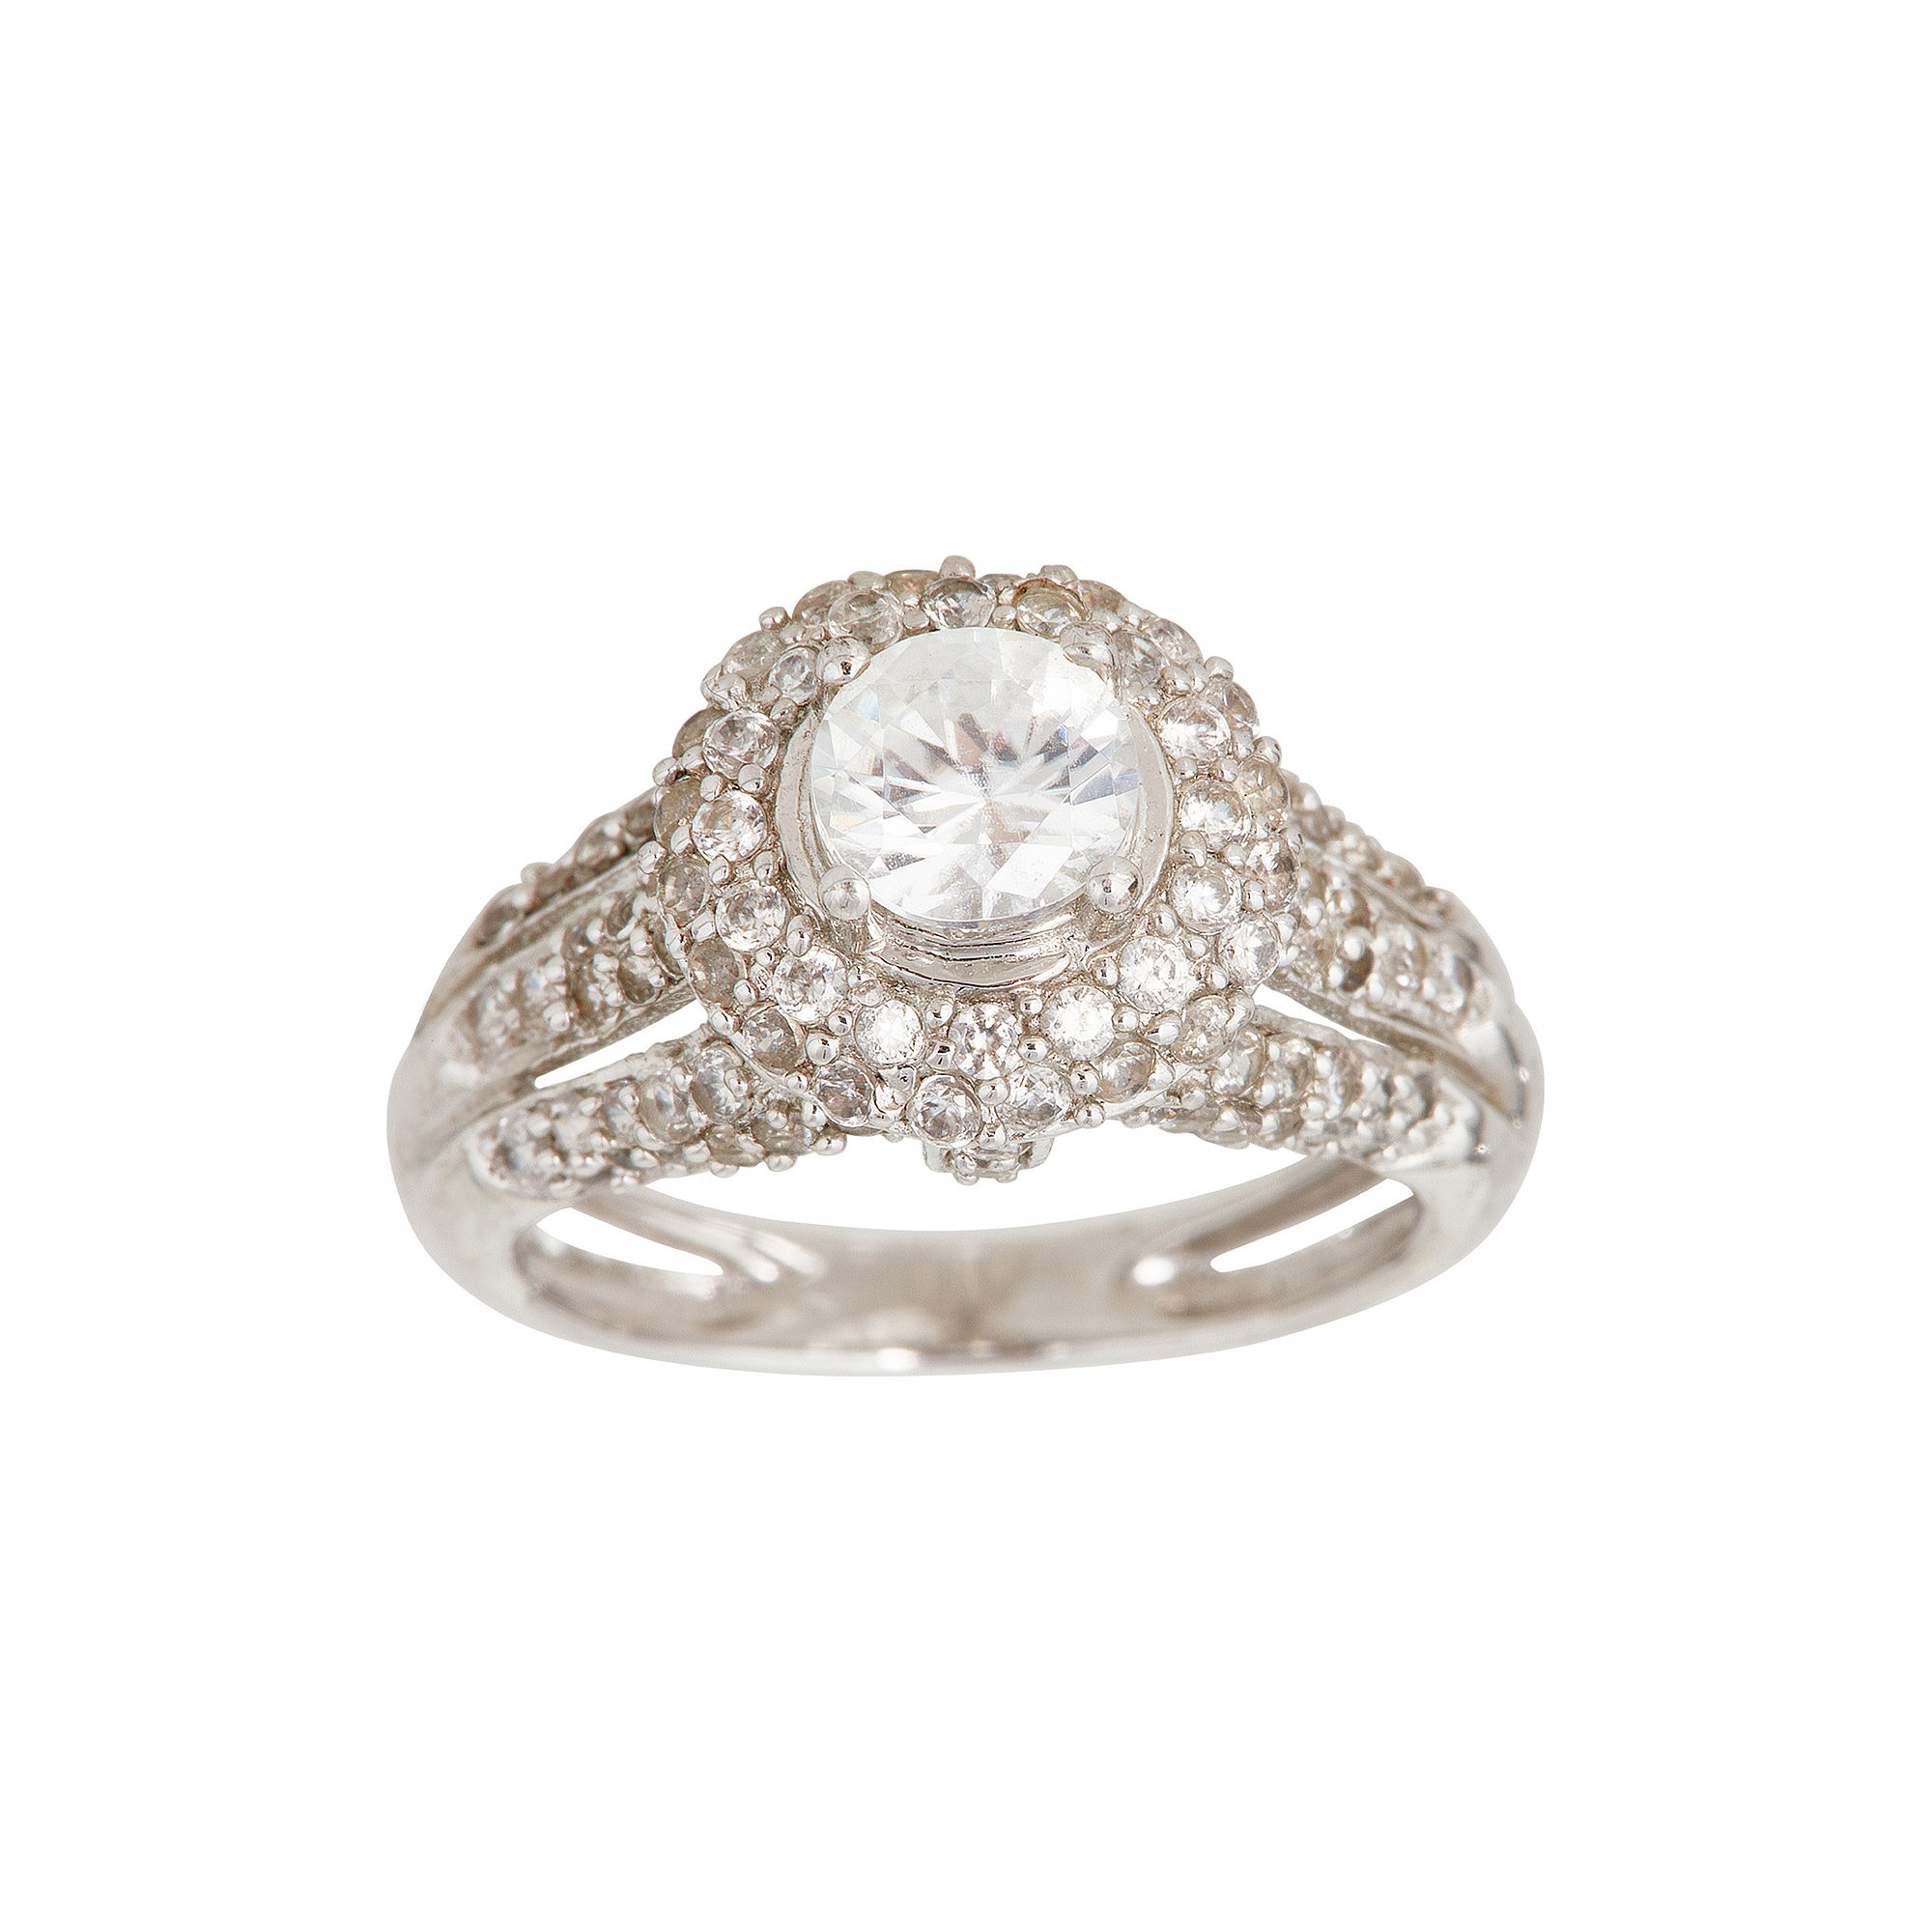 LIMITED QUANTITIES Genuine White Zircon Ring